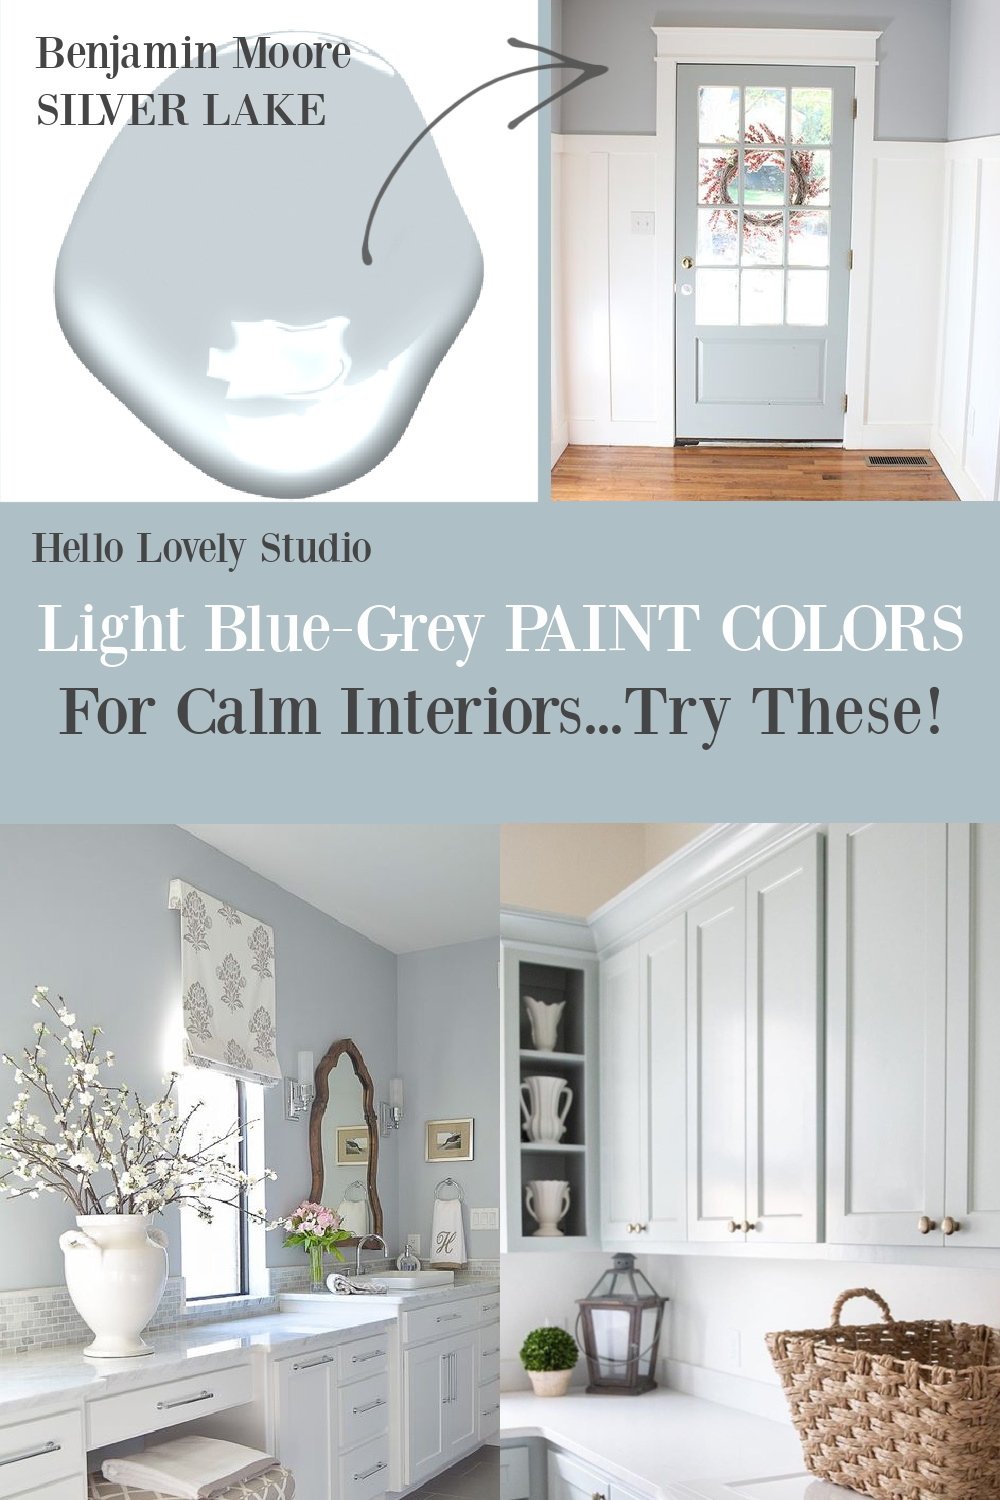 Light Blue-Grey Paint Colors for Calm Interiors...Try These on Hello Lovely! #paintcolors #greypaint #bluegrey